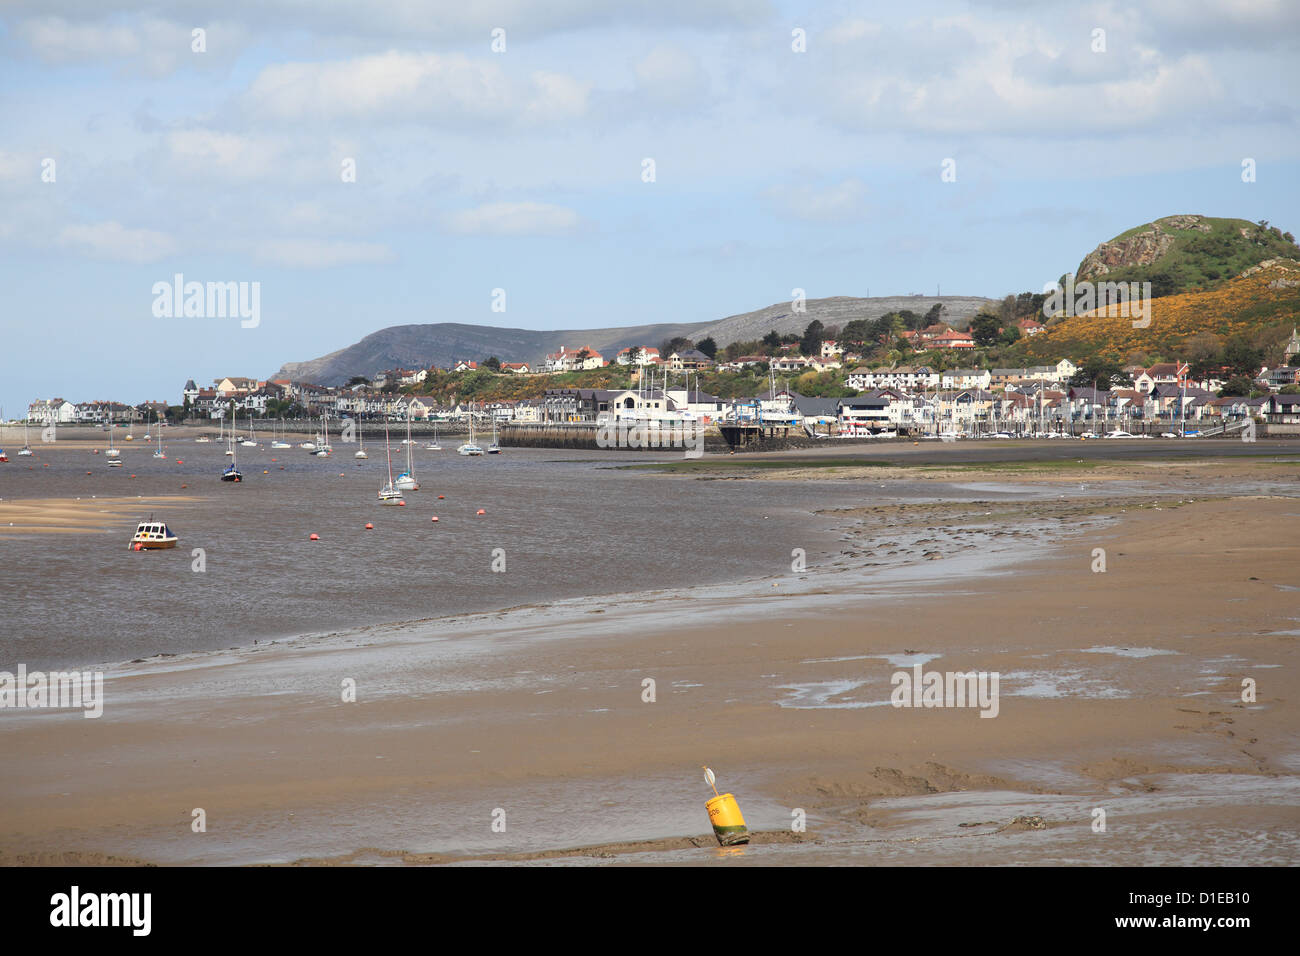 River Conwy estuary, Conwy, North Wales, Wales, United Kingdom, Europe Stock Photo